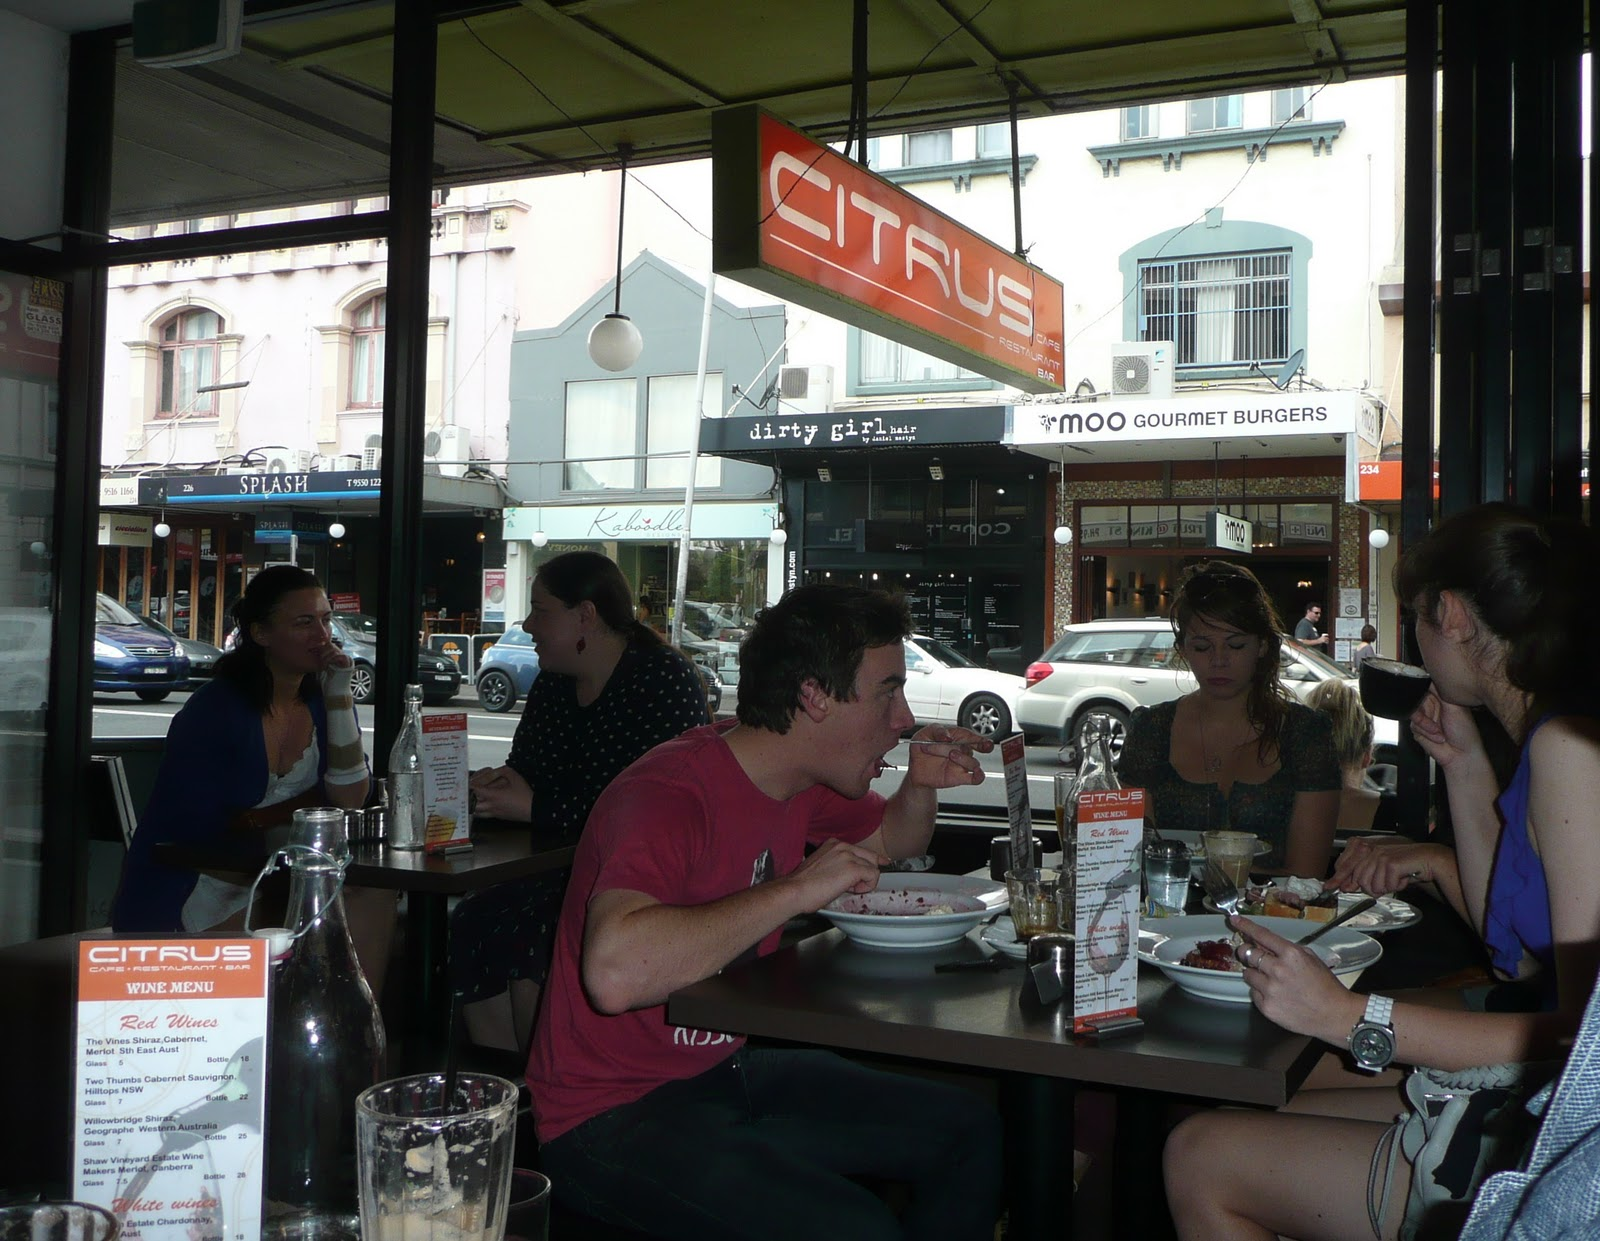 South End Cafe King St Newtown